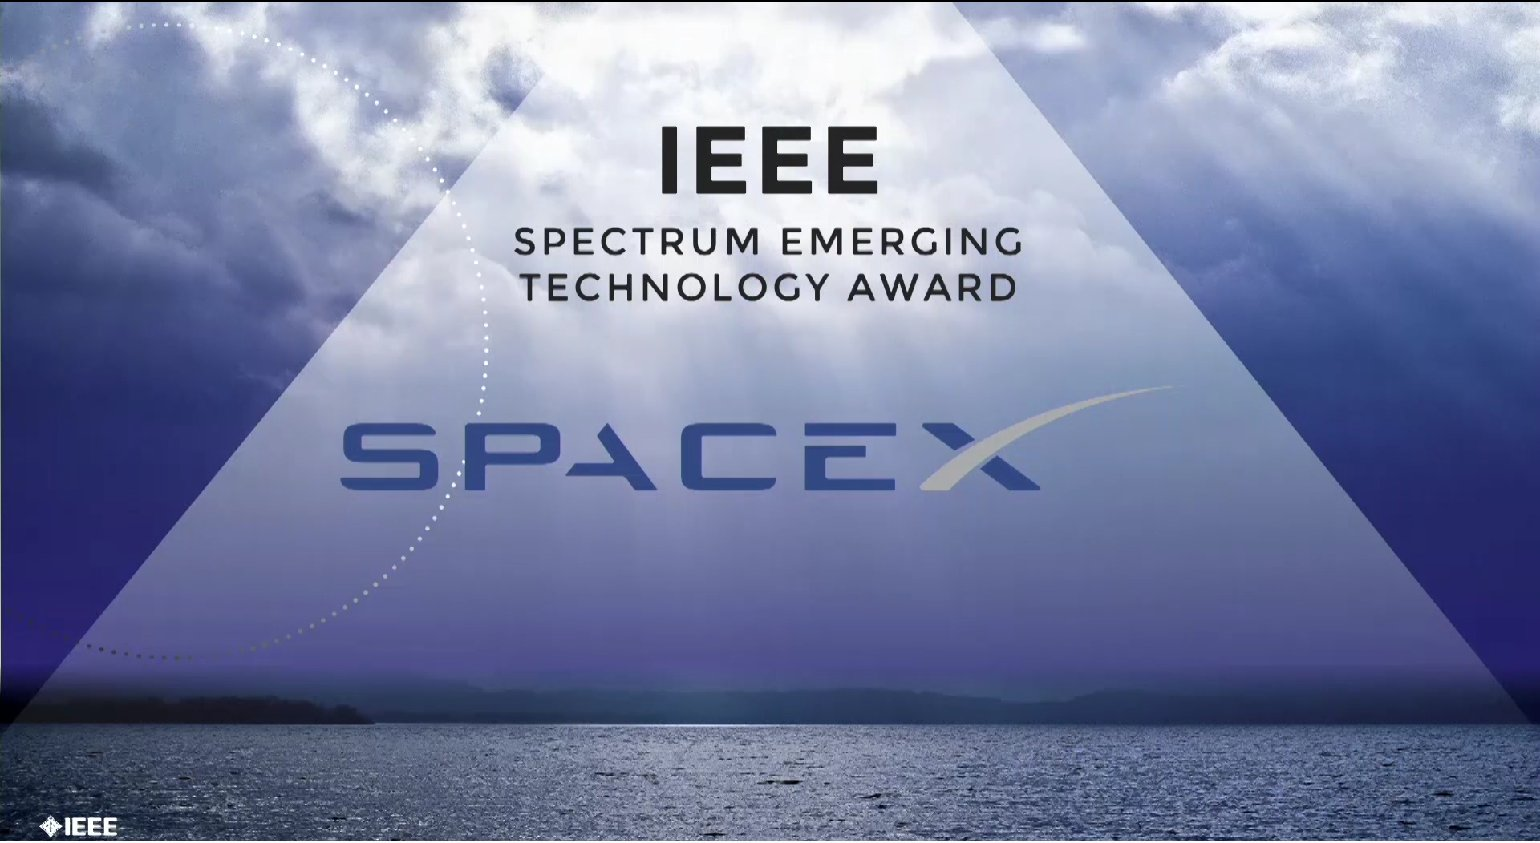 SpaceX receives the IEEE Spectrum Emerging Technology Award - Honors Ceremony 2017